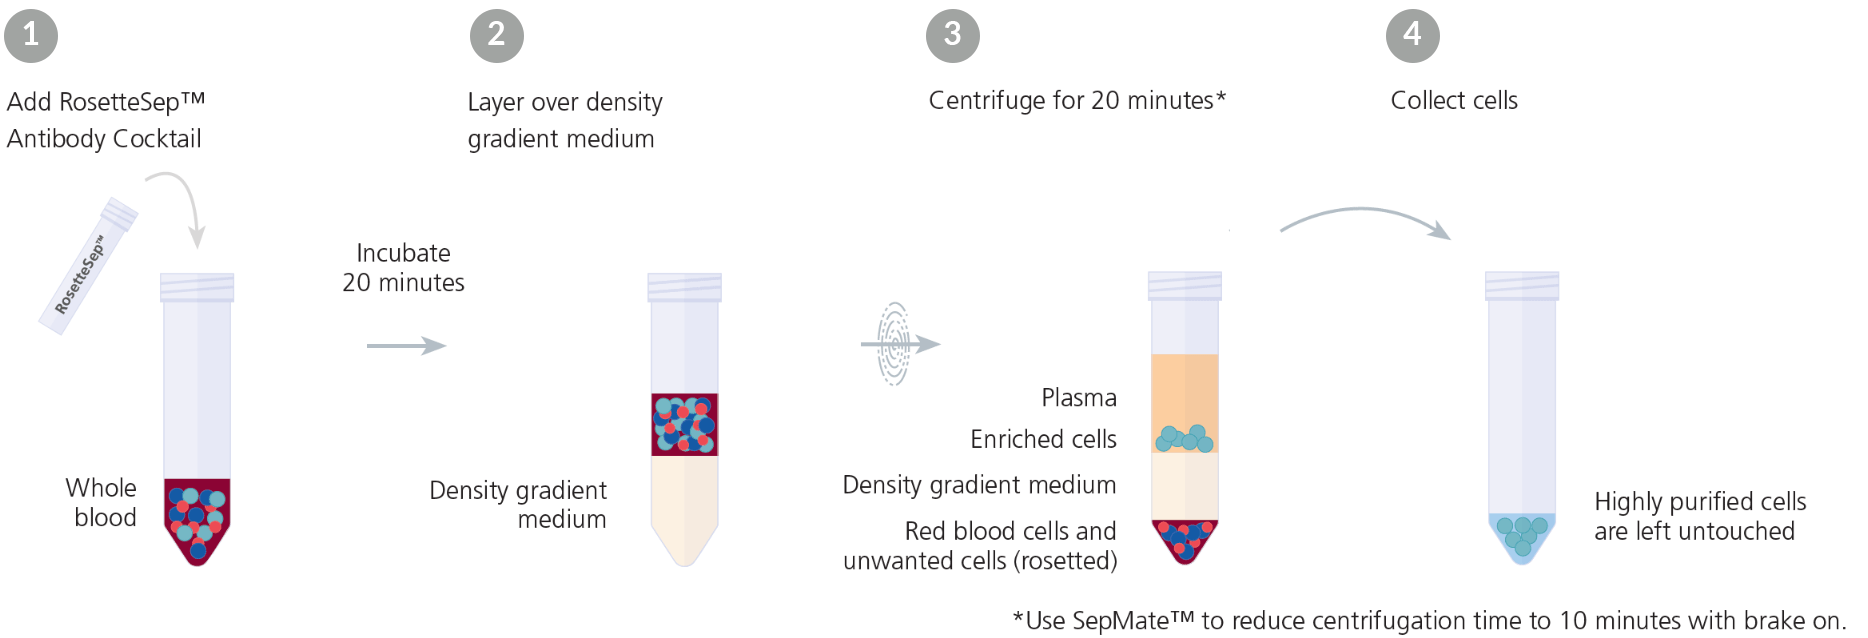 Typical RosetteSep™ Cell Separation Protocol